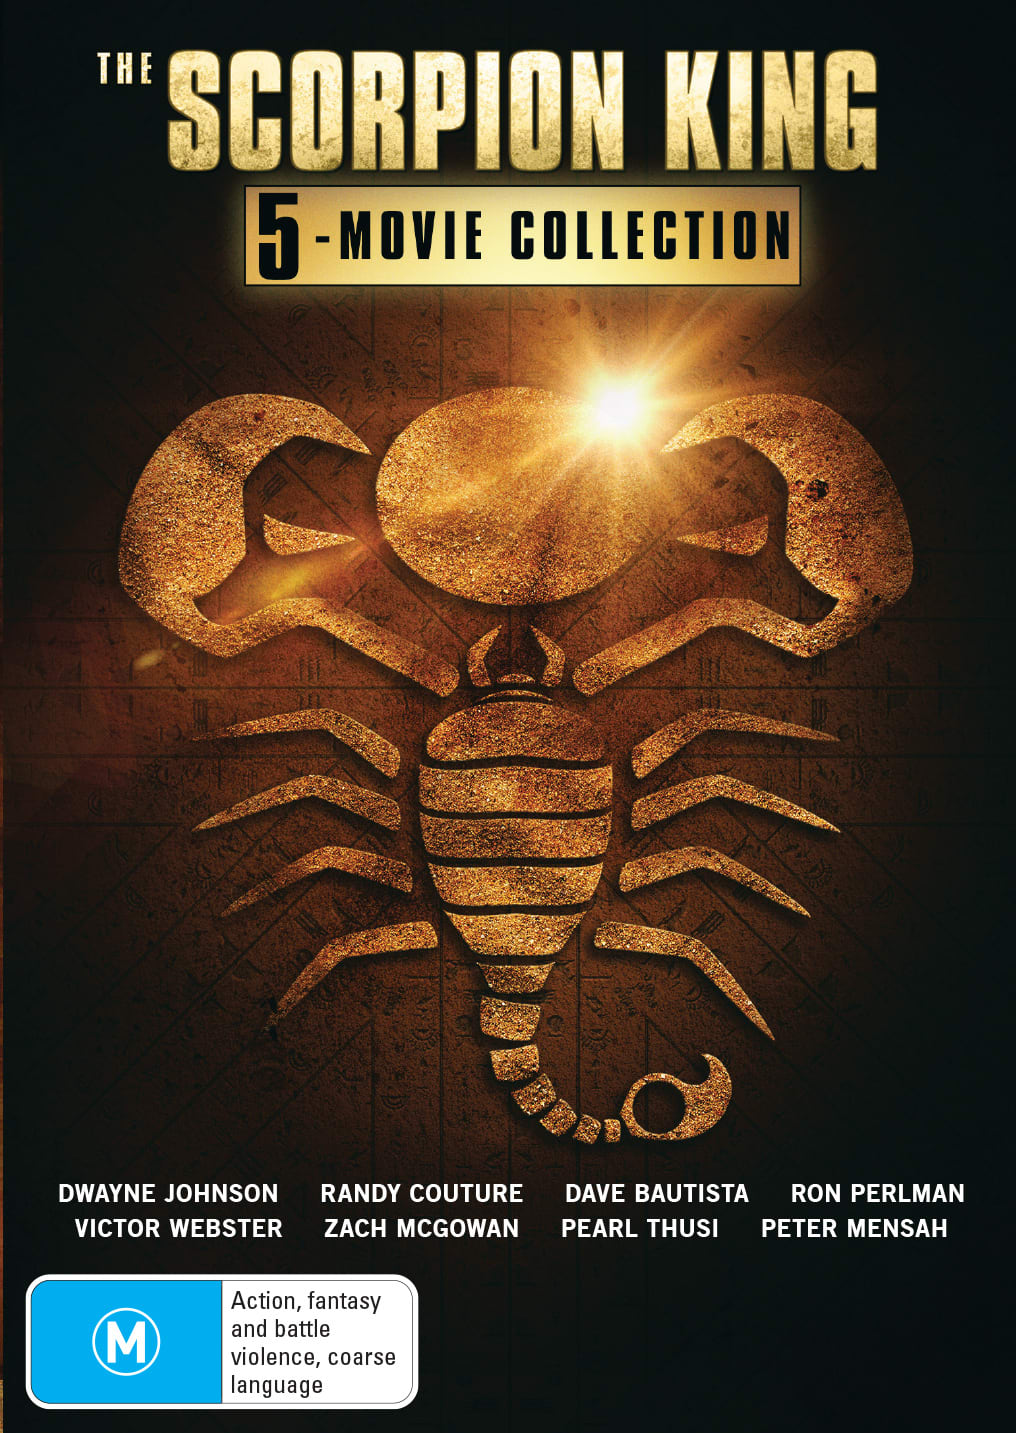 The Scorpion King: 5-movie Collection (Box Set) [DVD]